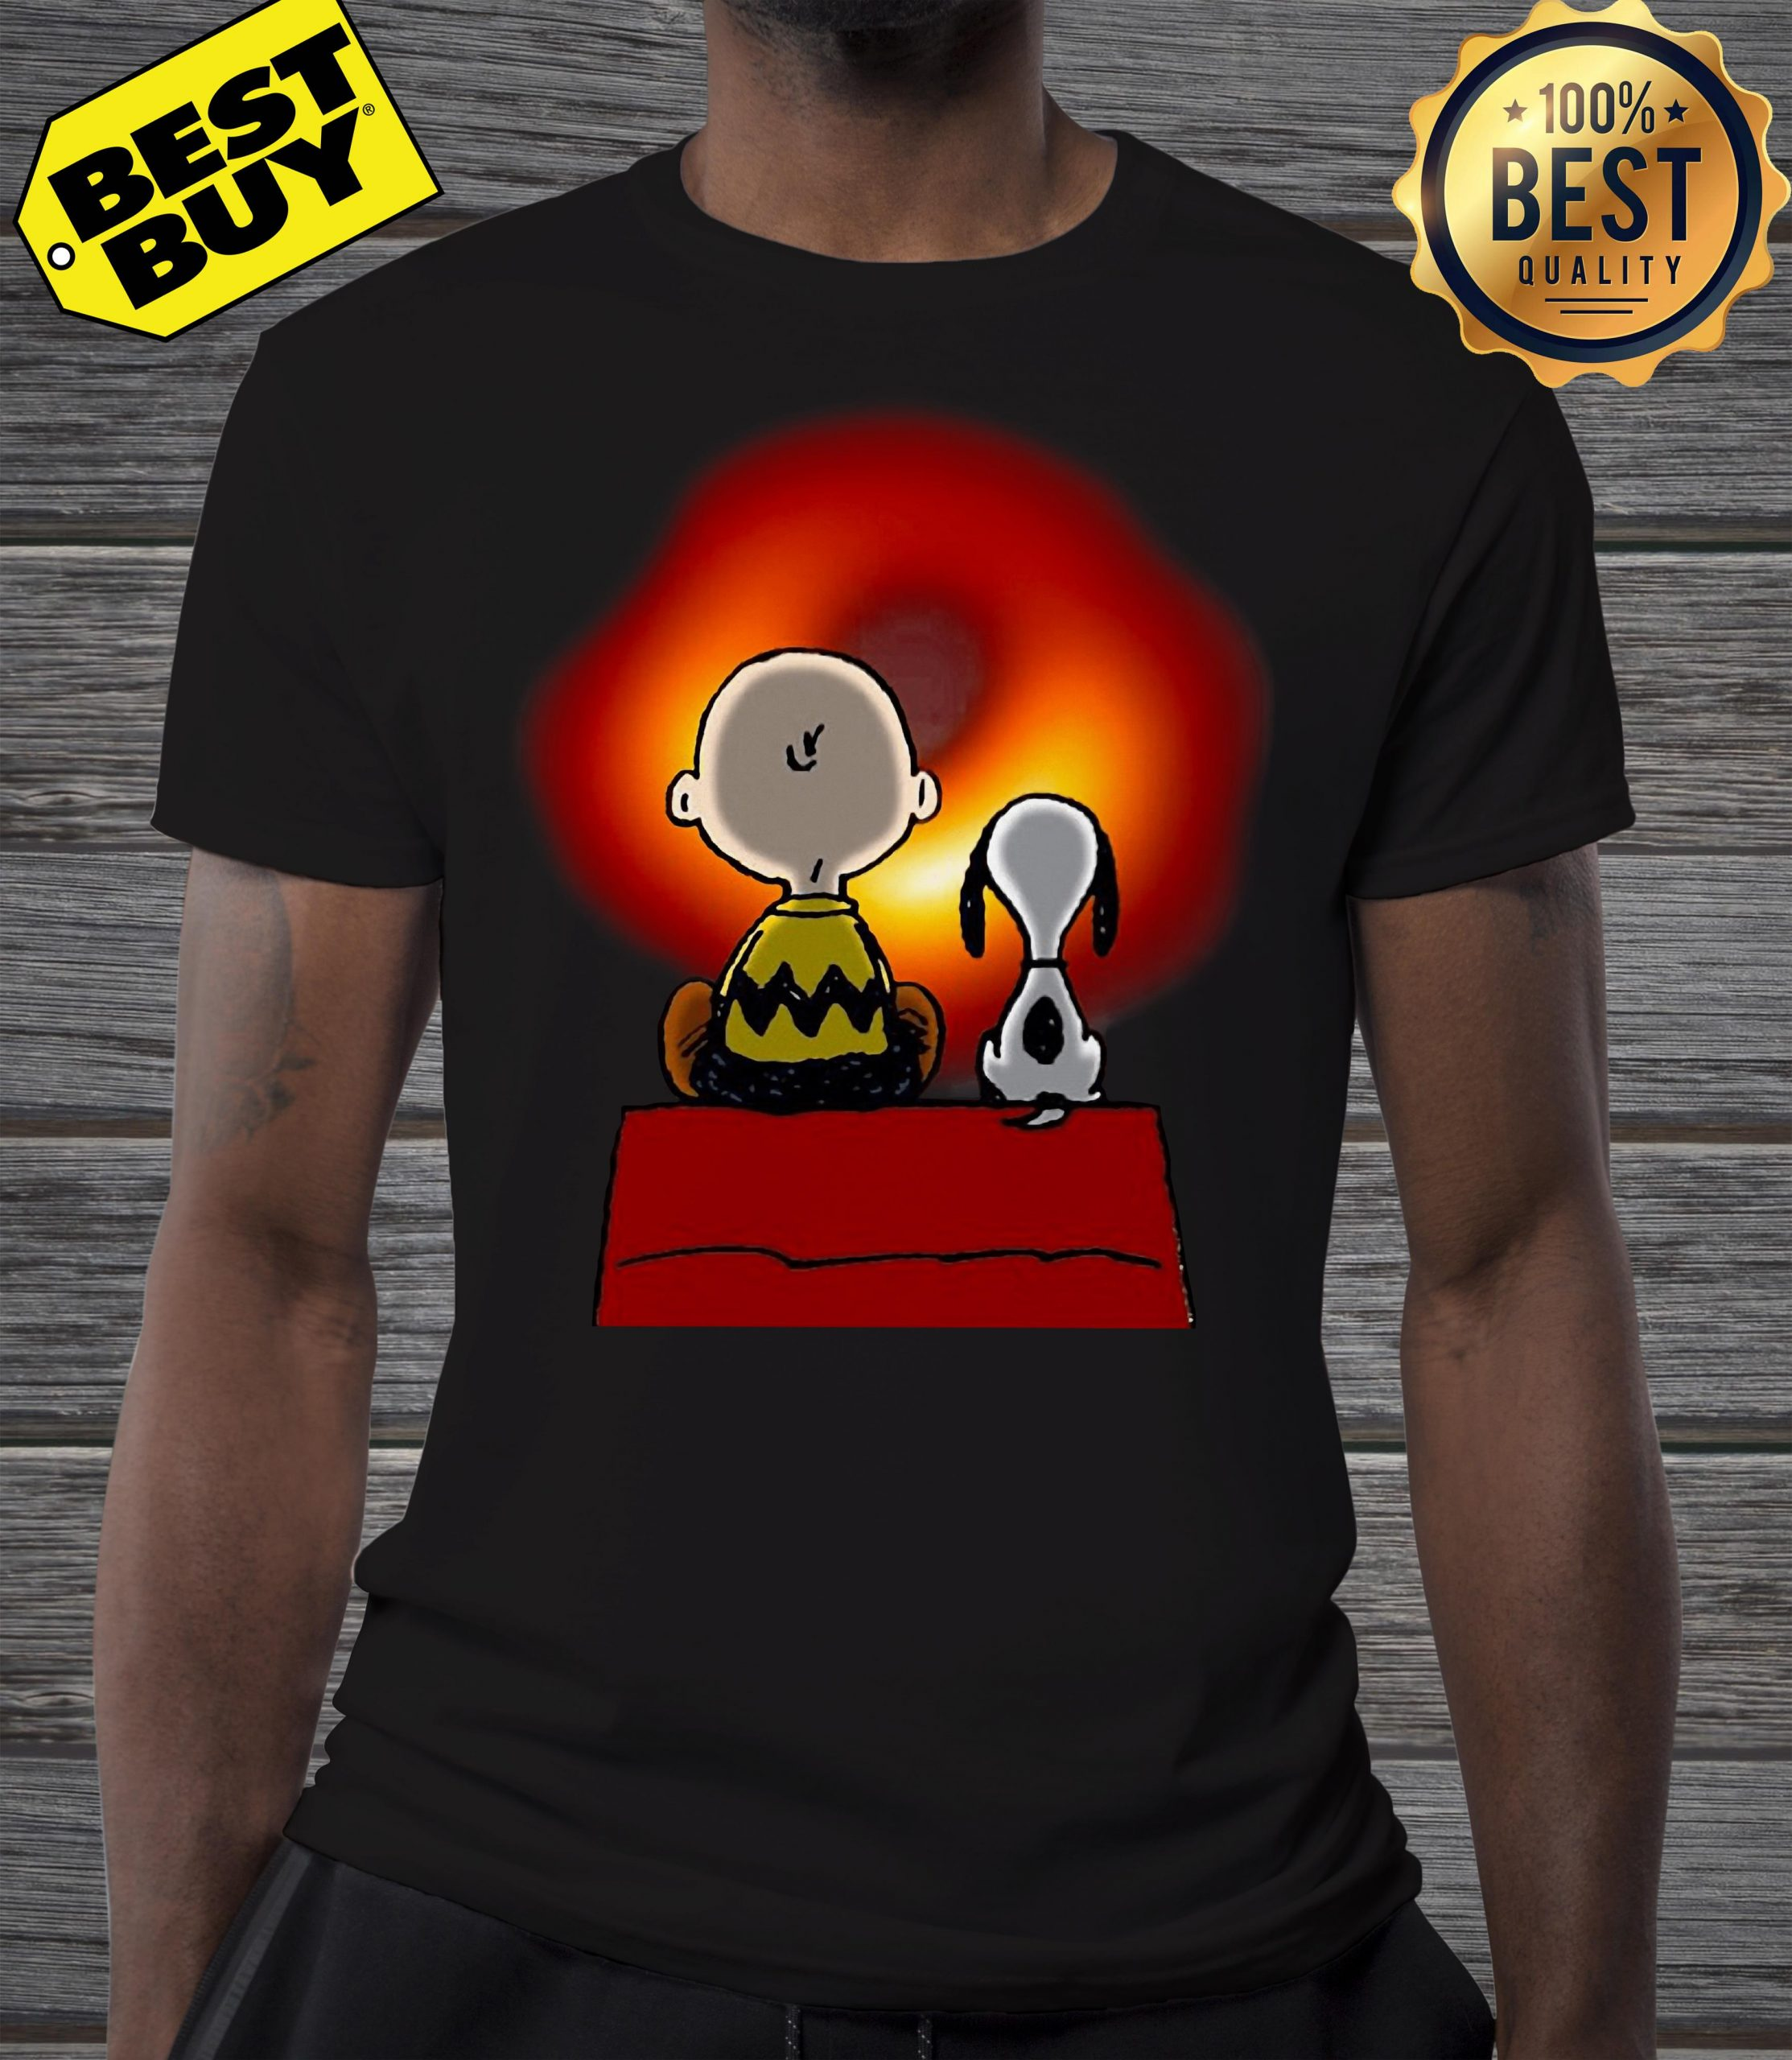 Official Nasa SpaceX Snoopy Charlie Brown La Vie shirt